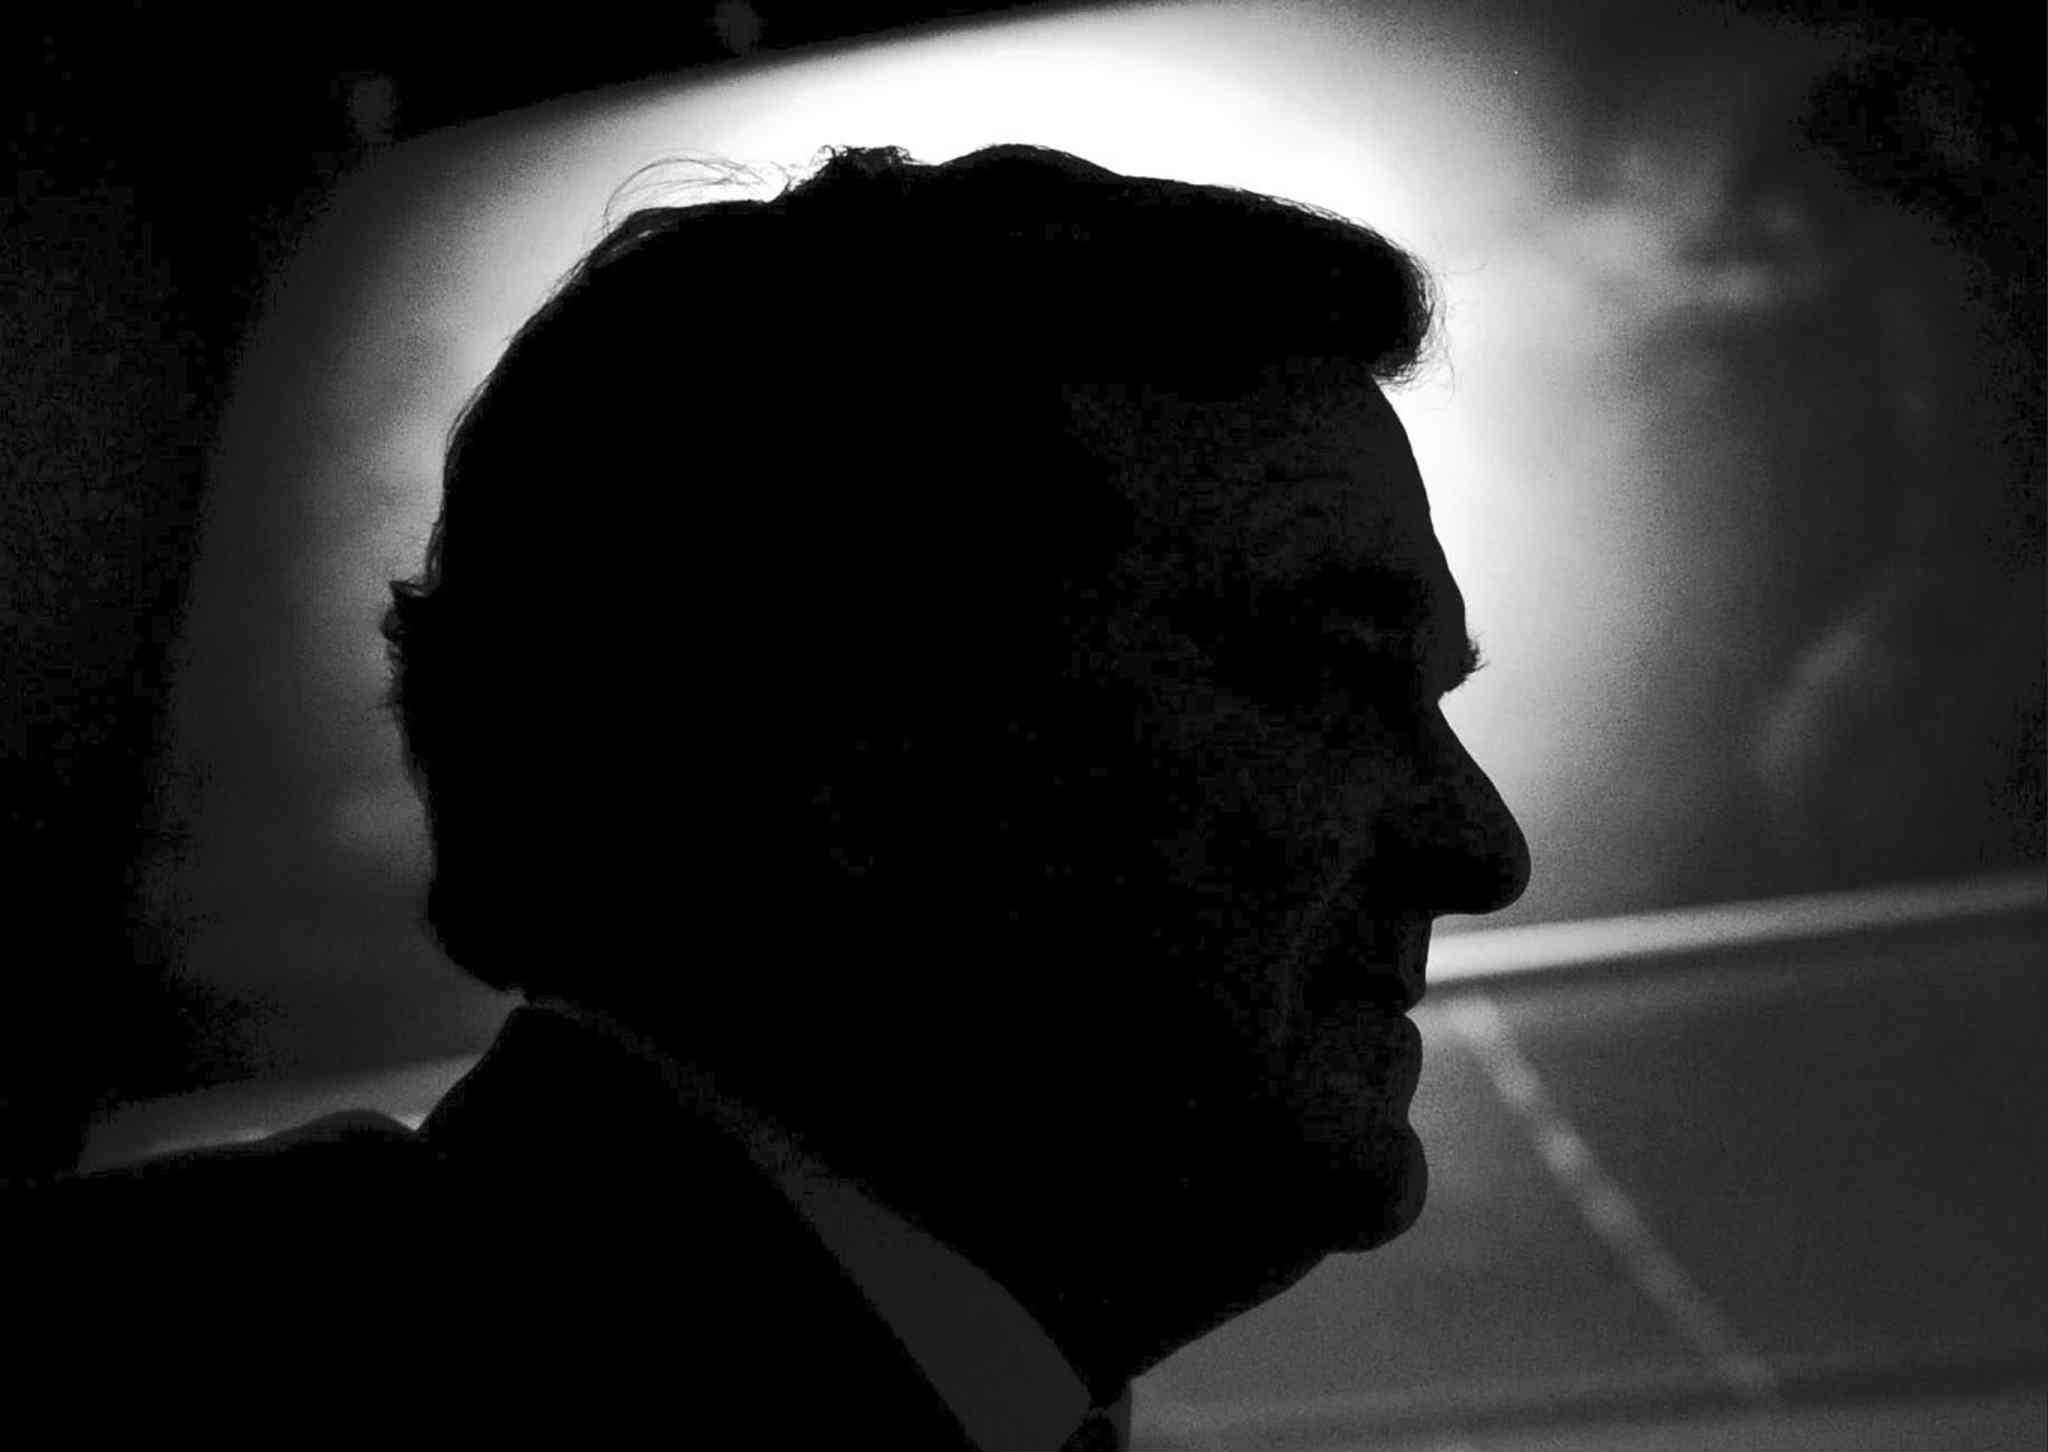 Former finance minister Jim Flaherty is silhouetted during an event at the Canadian War Museum in Ottawa in January 2012.